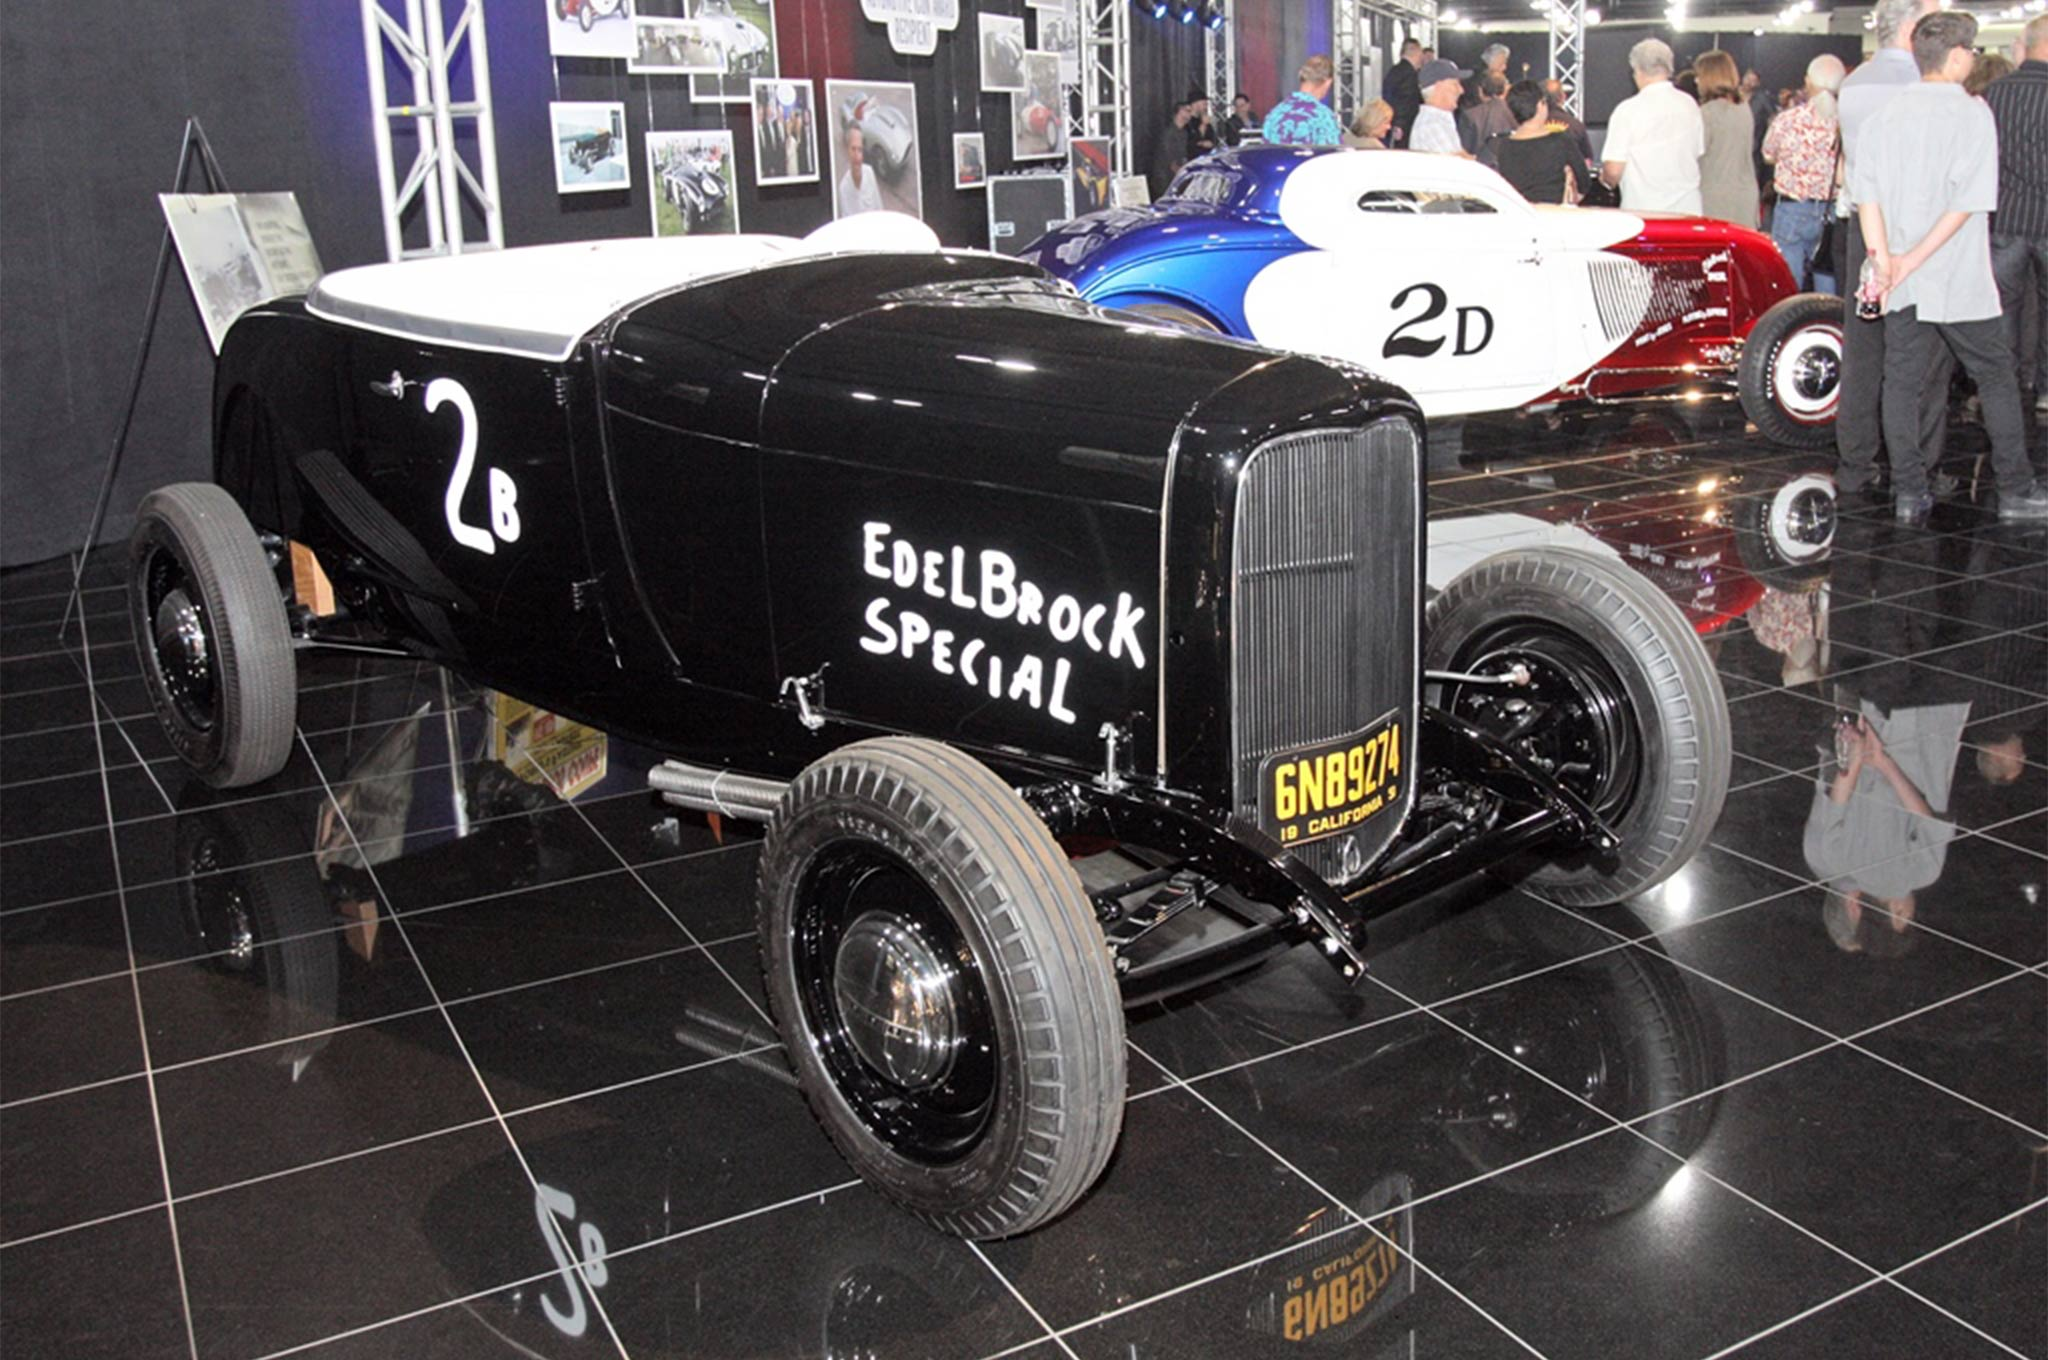 Bill Likes built and raced the Edelbrock Special 1932 Ford roadster, another significant part of hot rod history from the dry lakes. It's now restored and part of Bruce Meyer's collection.